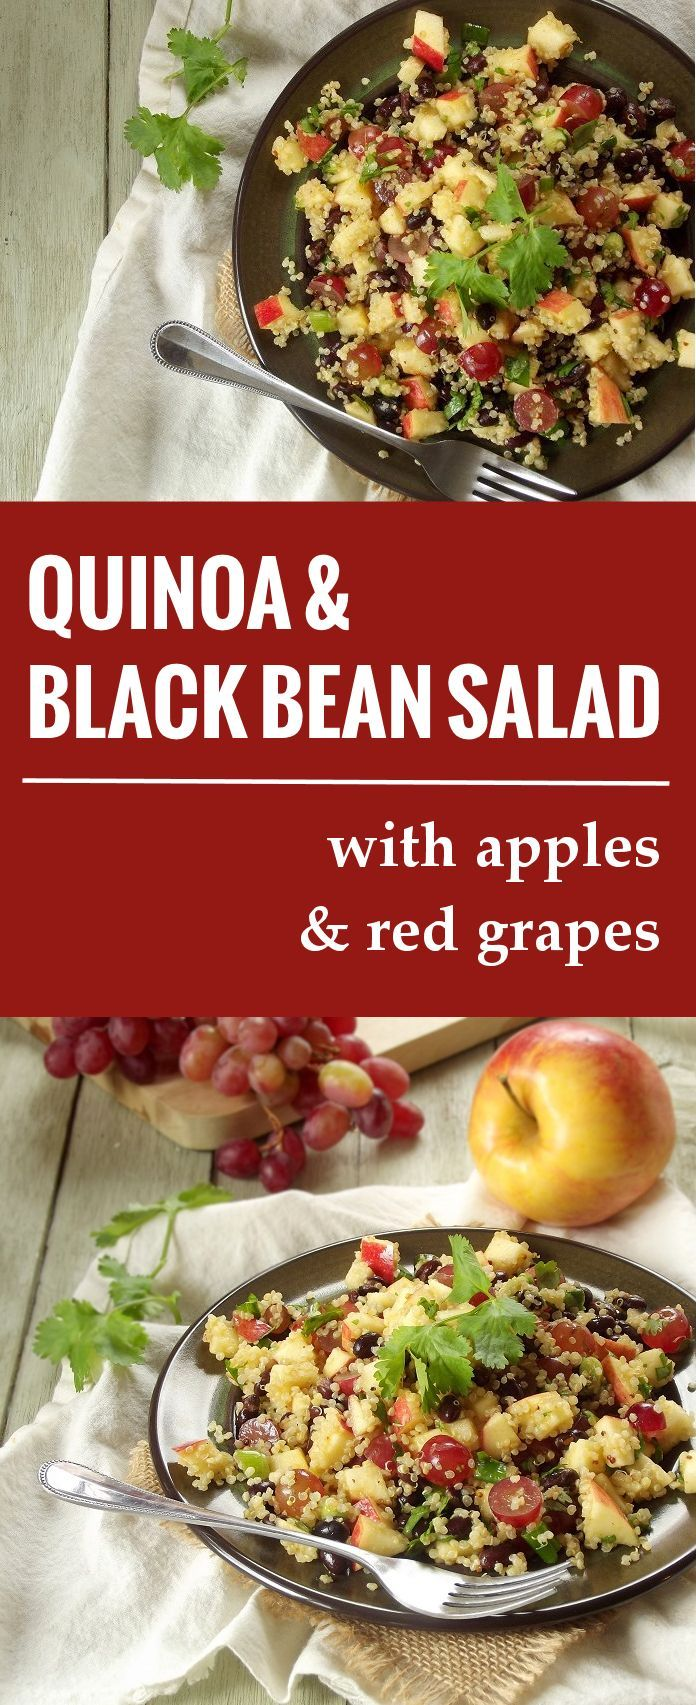 Quinoa Salad With Black Beans Apples And Red Grapes Book Review Broccoli Love And Dark Chocolate Healthy Salad Recipes Vegetarian Recipes Food